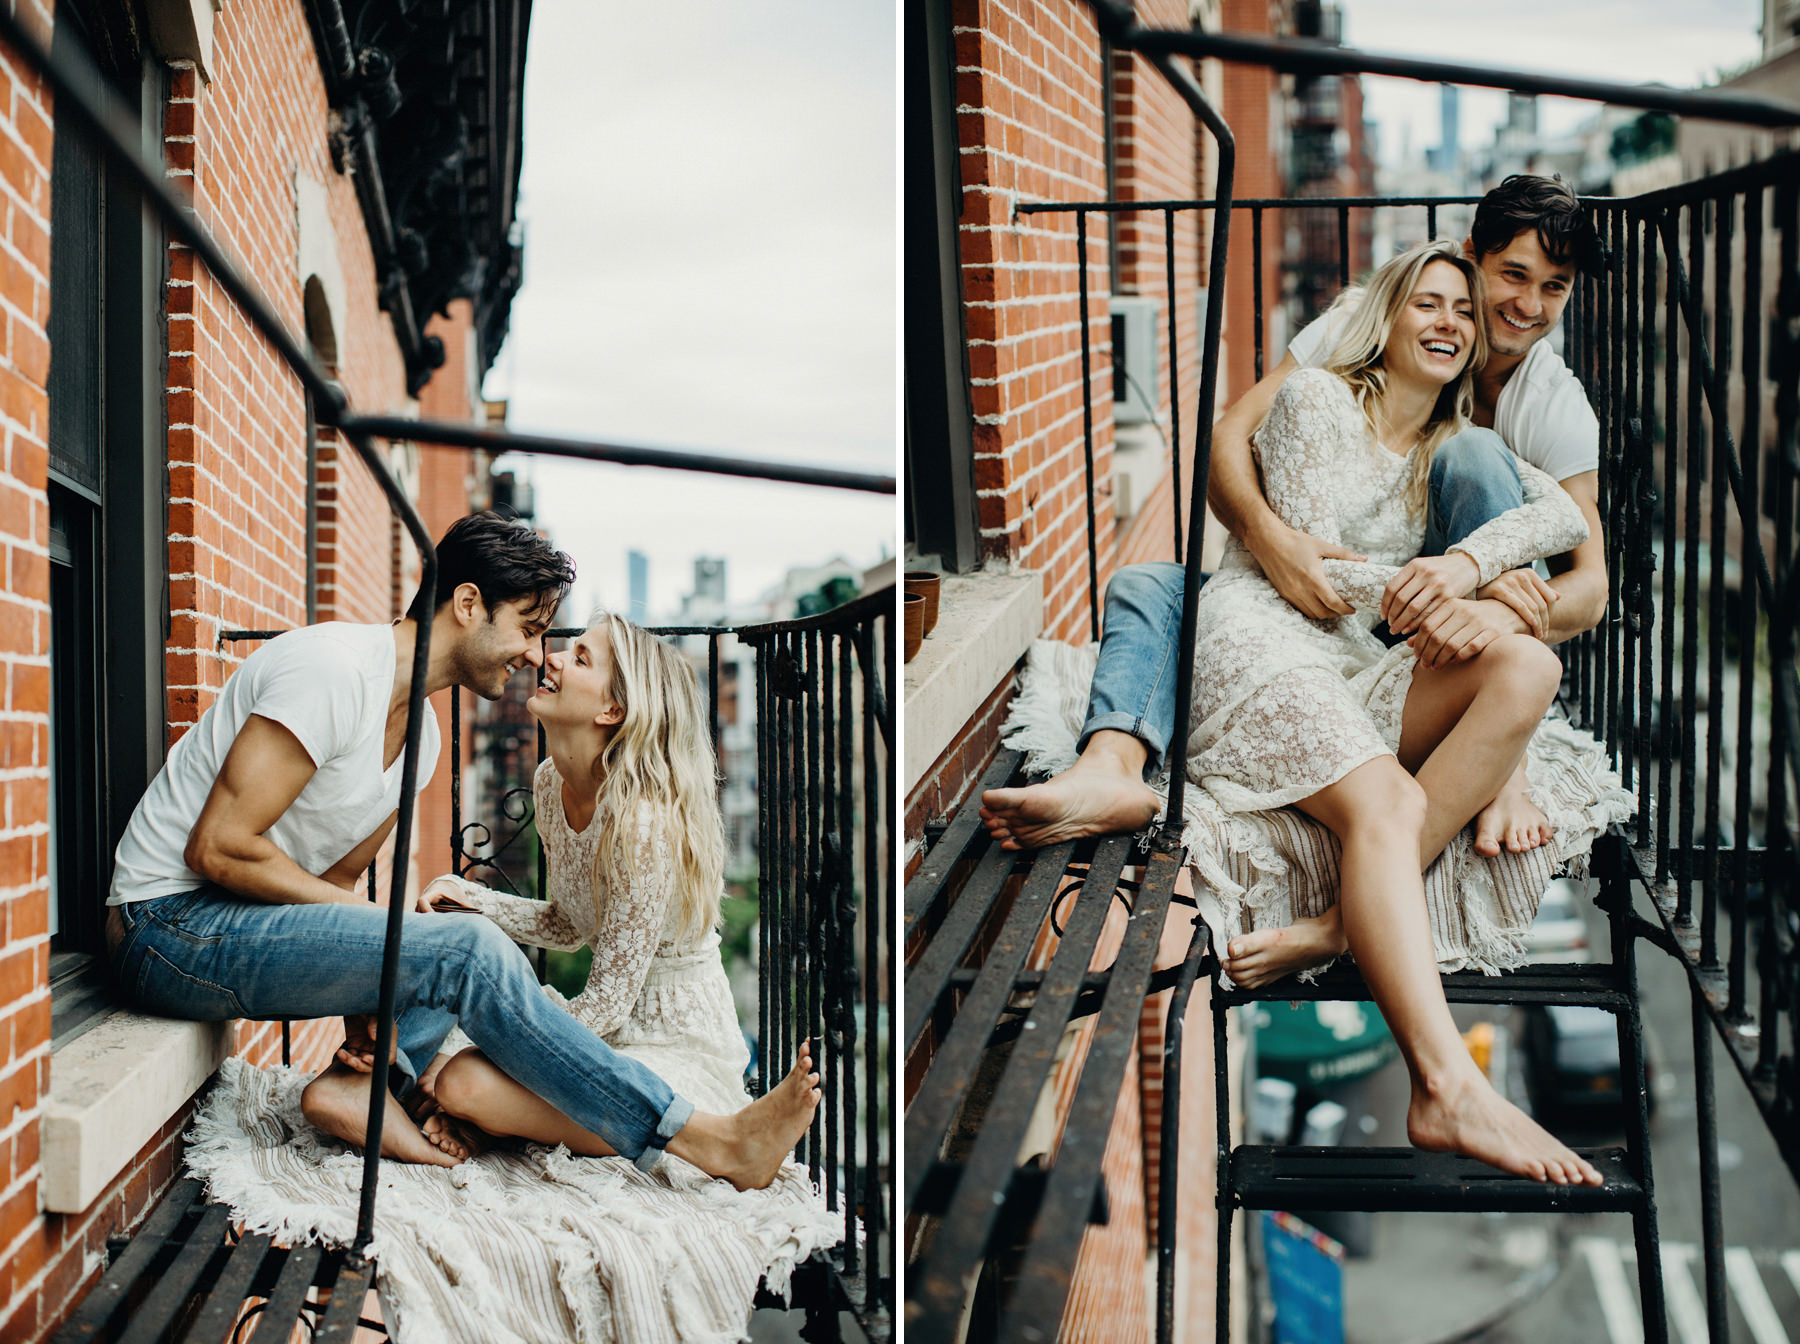 New-York-Rooftop-Session-6.jpg